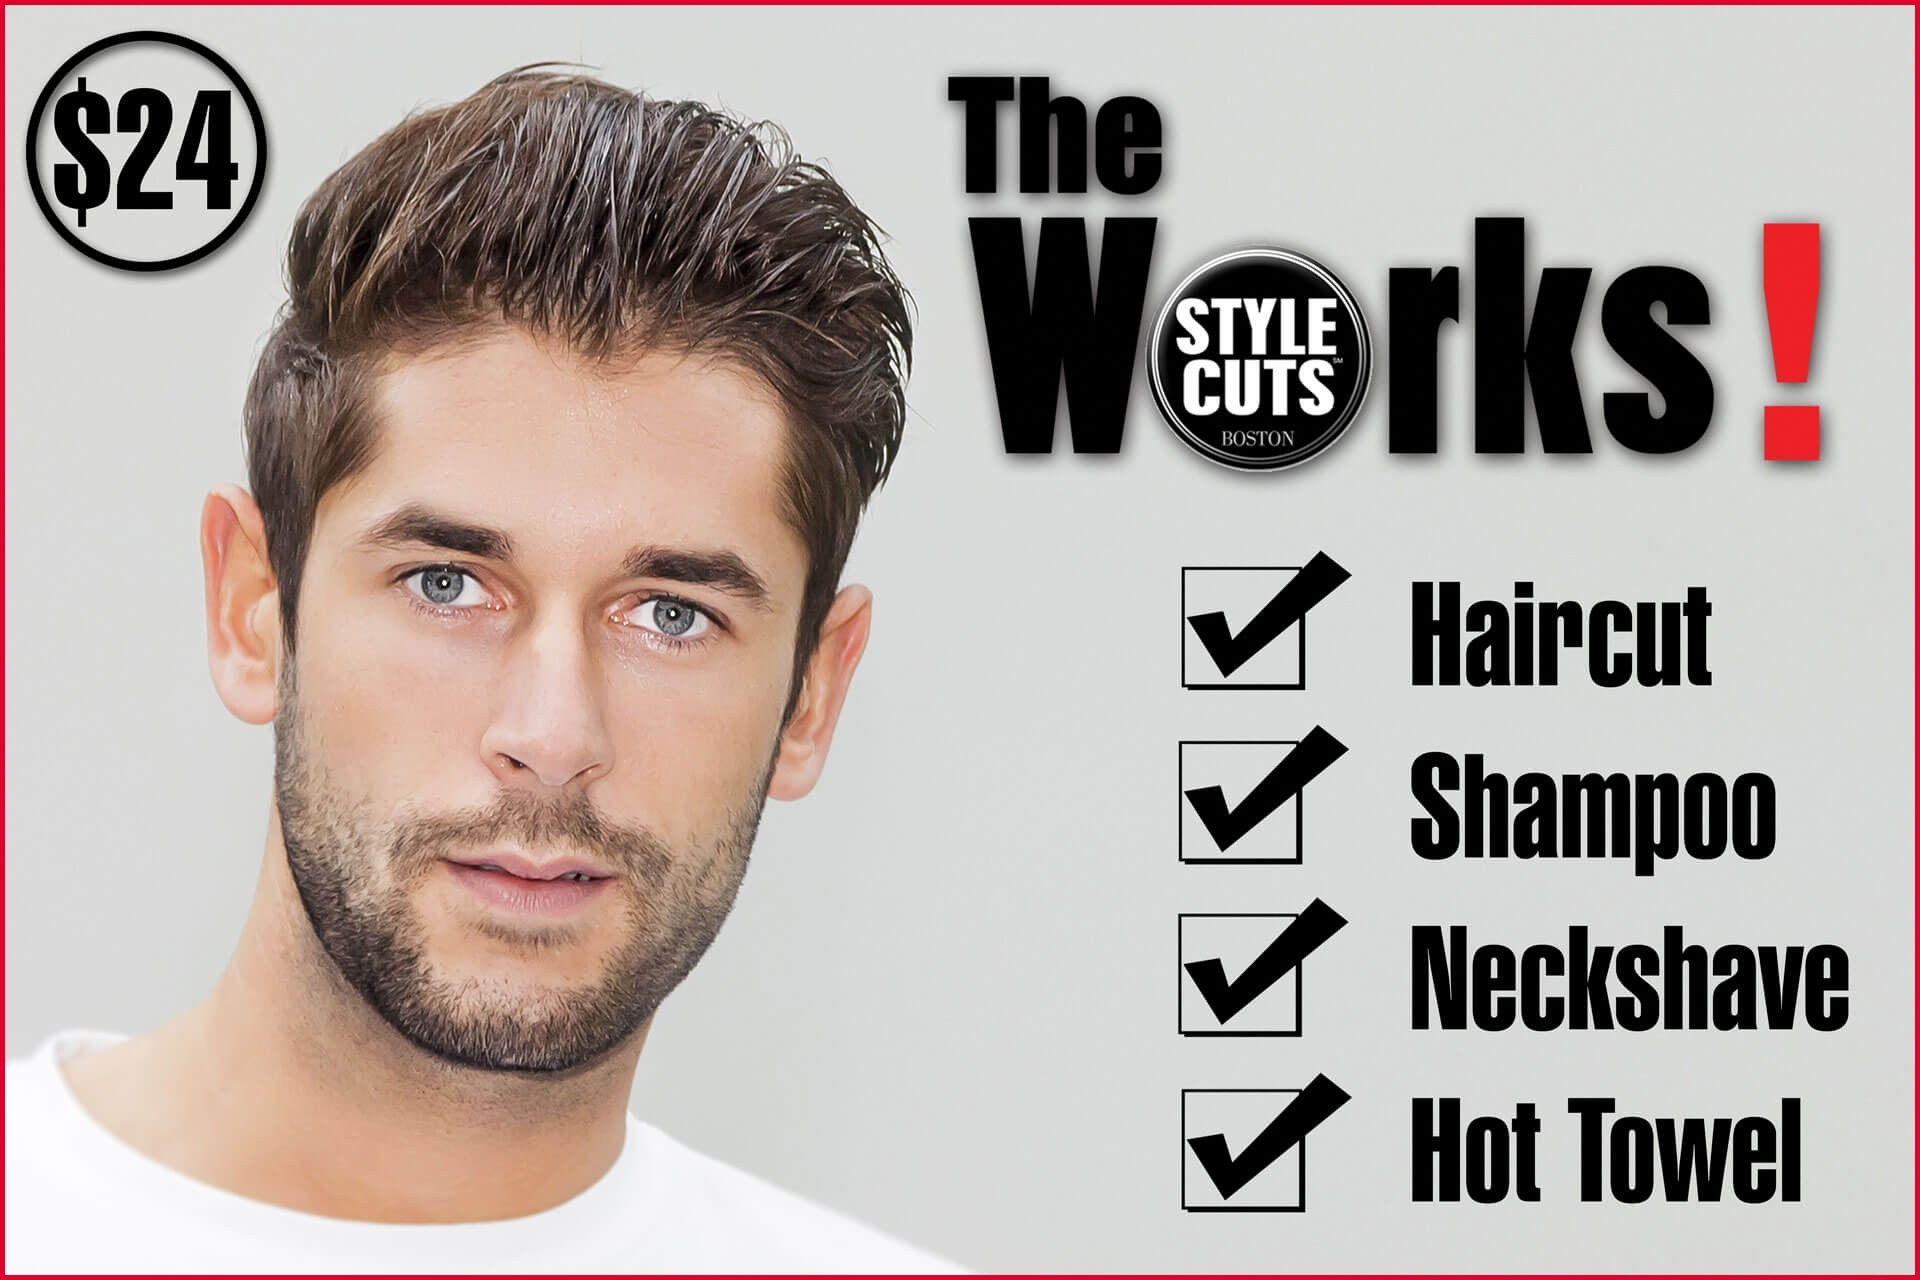 haircuts salon near me haircut me walk in wavy haircut 2615 | walk in haircut near me 215770 stylecuts haircuts hair salon barber for haircut near me walk in